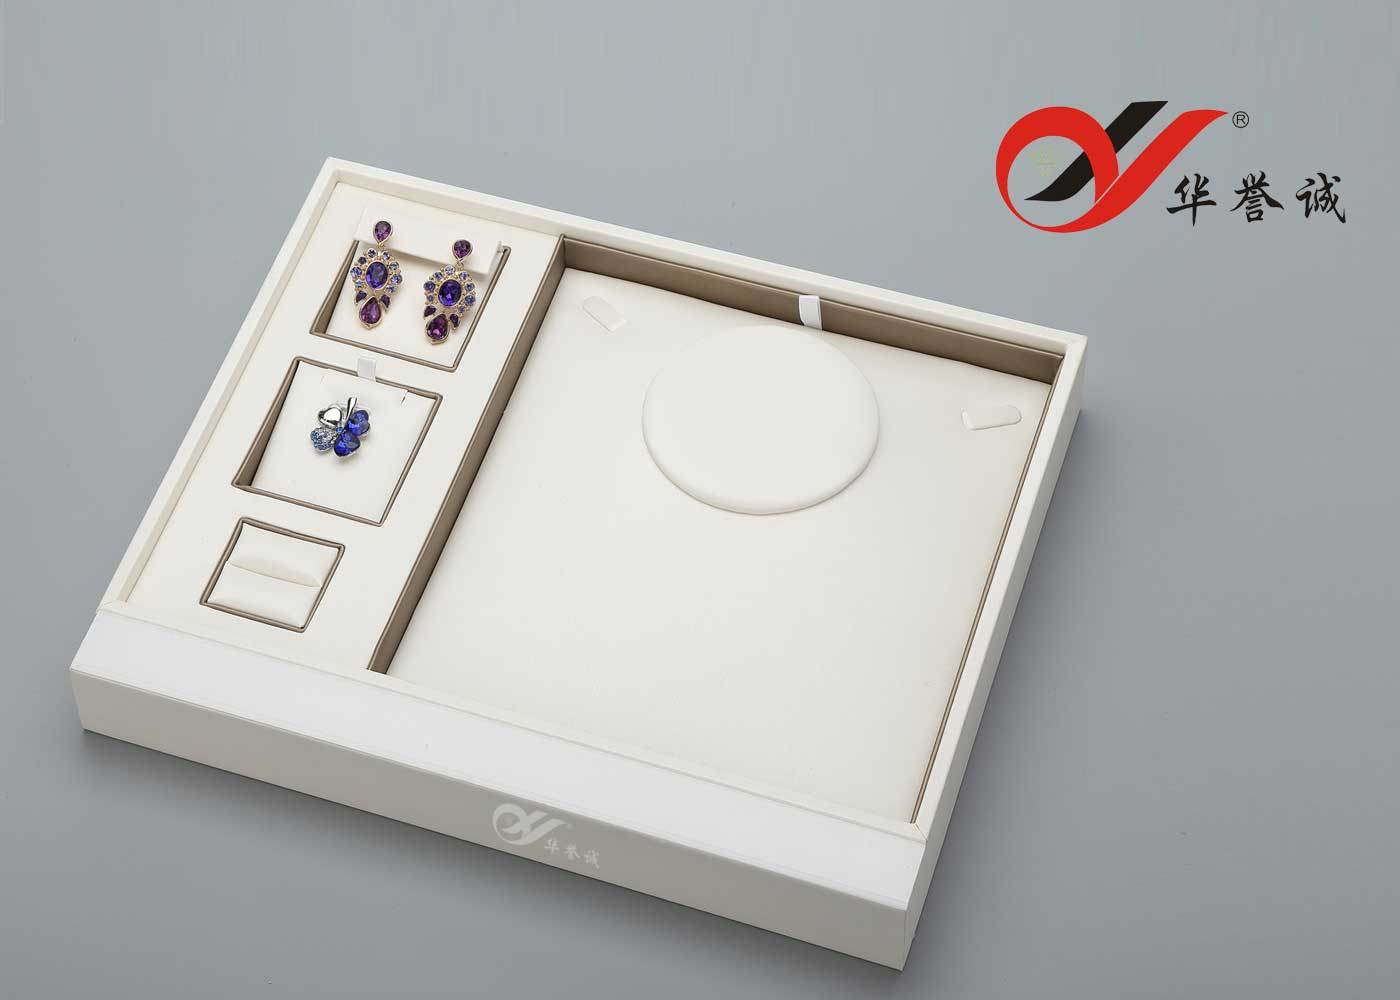 Multifunction Jewelry Display Tray for Pendant, Ring, Earring